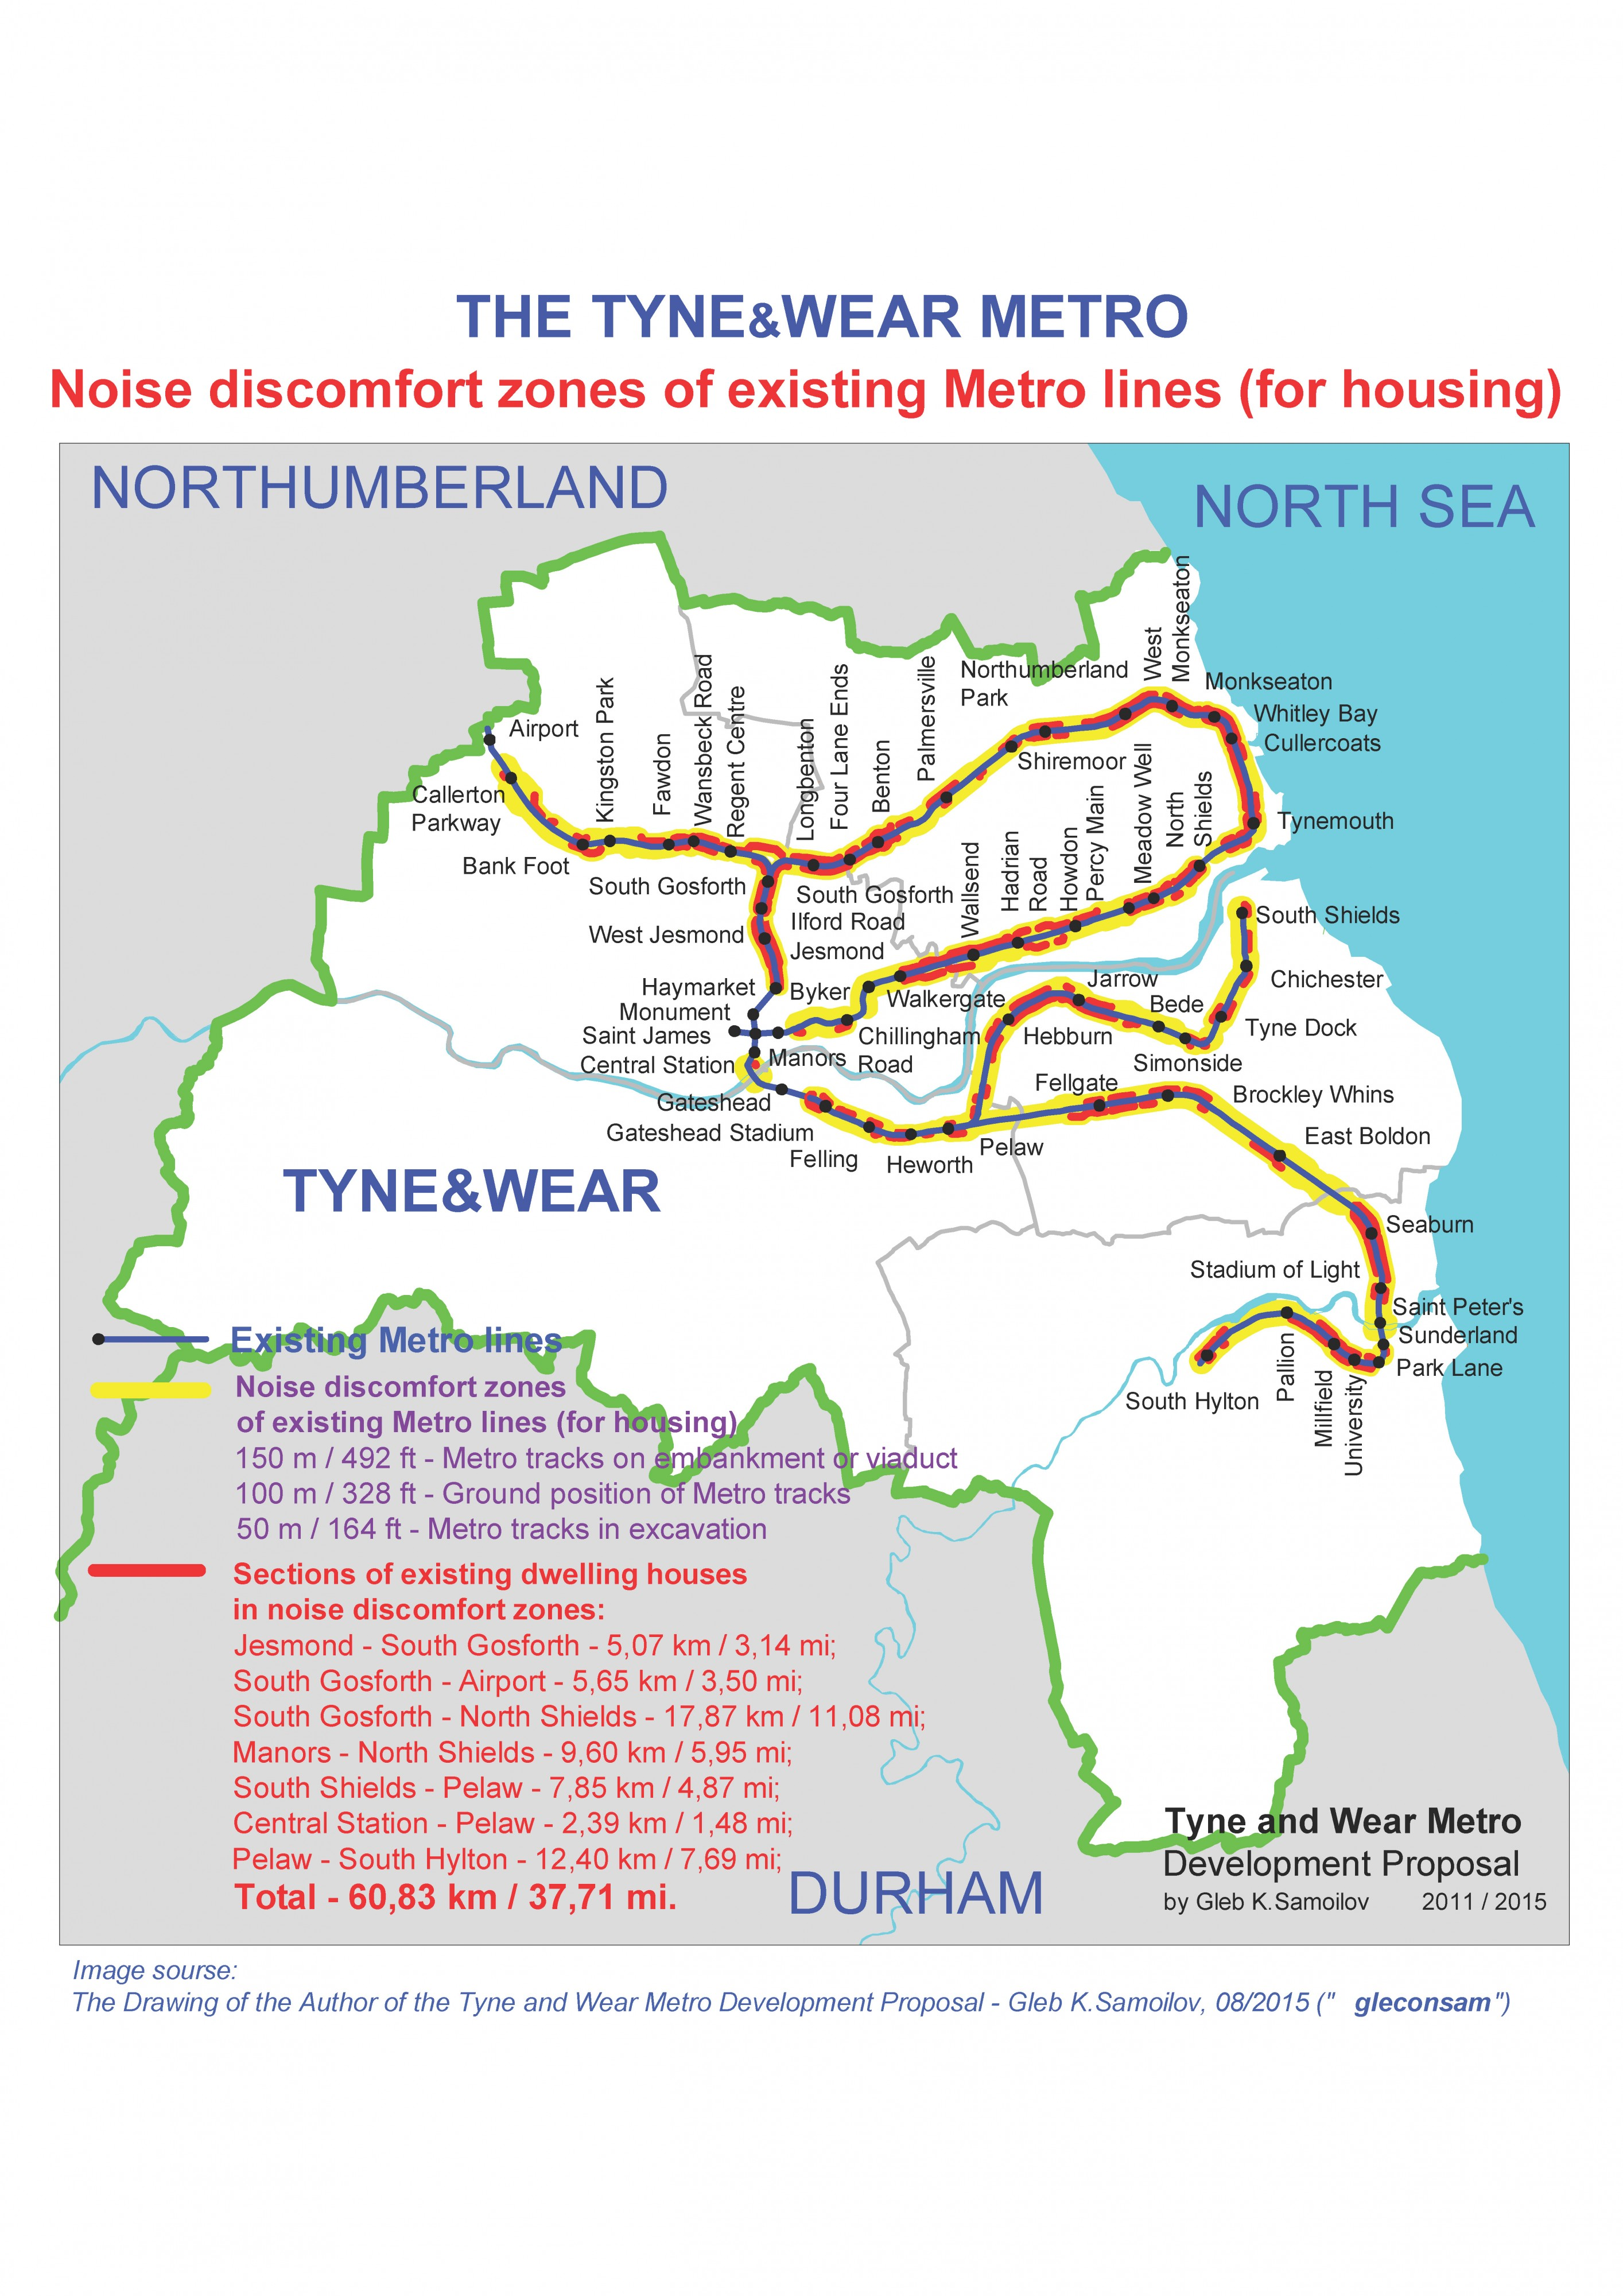 Noise discomfort zones of existing Tyne and Wear Metro lines for housing